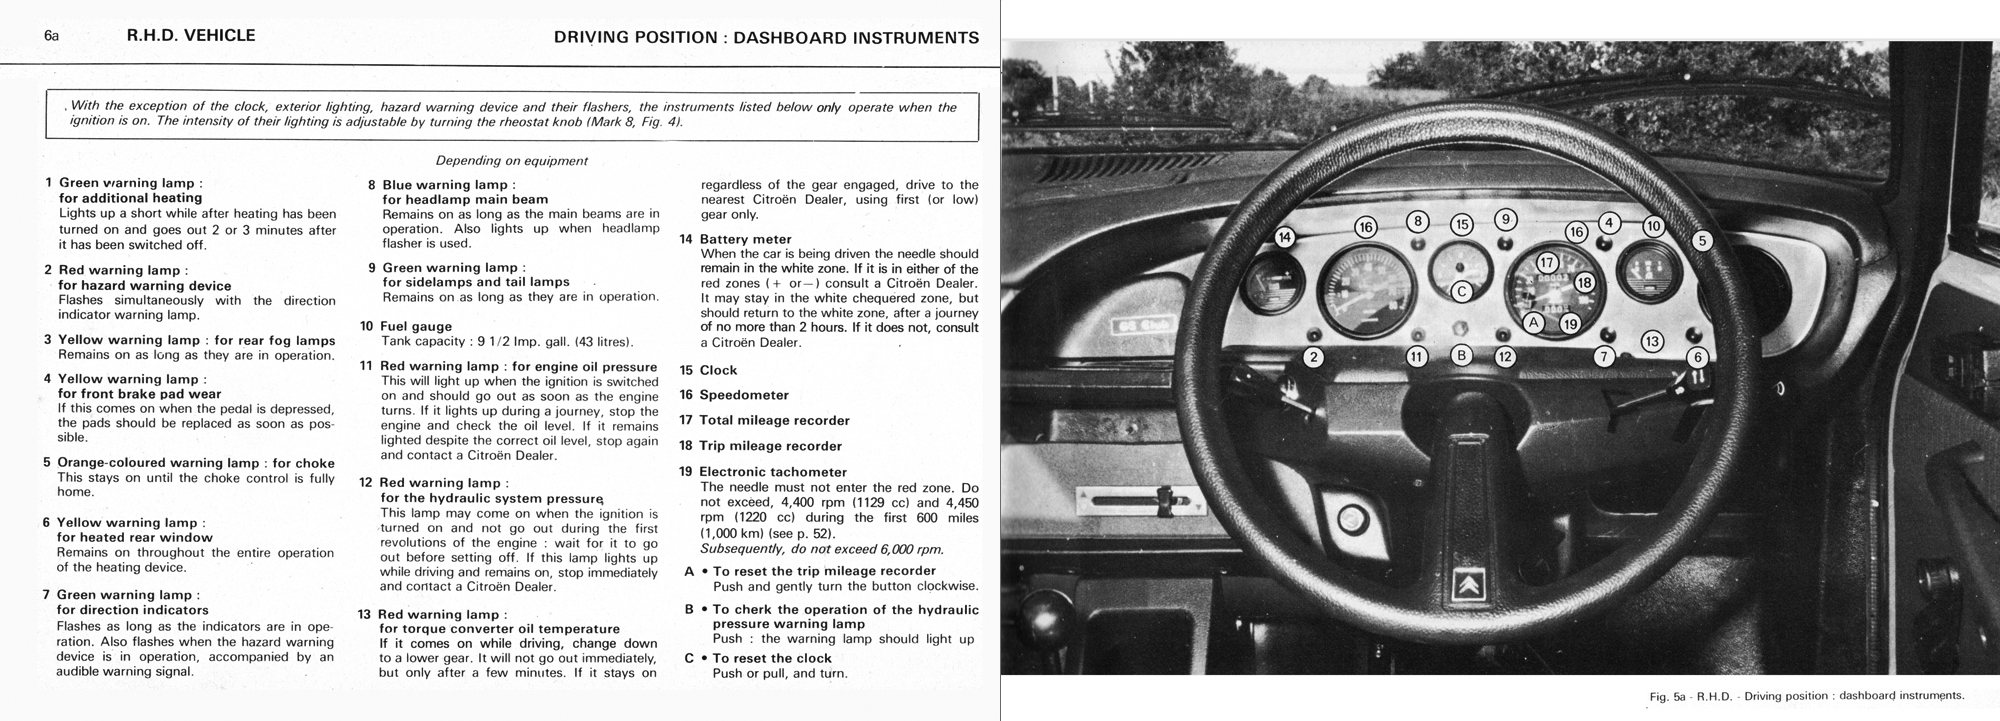 Index Of Passenger Cars Michelin Gs 1977 Om Audible Flasher Warning